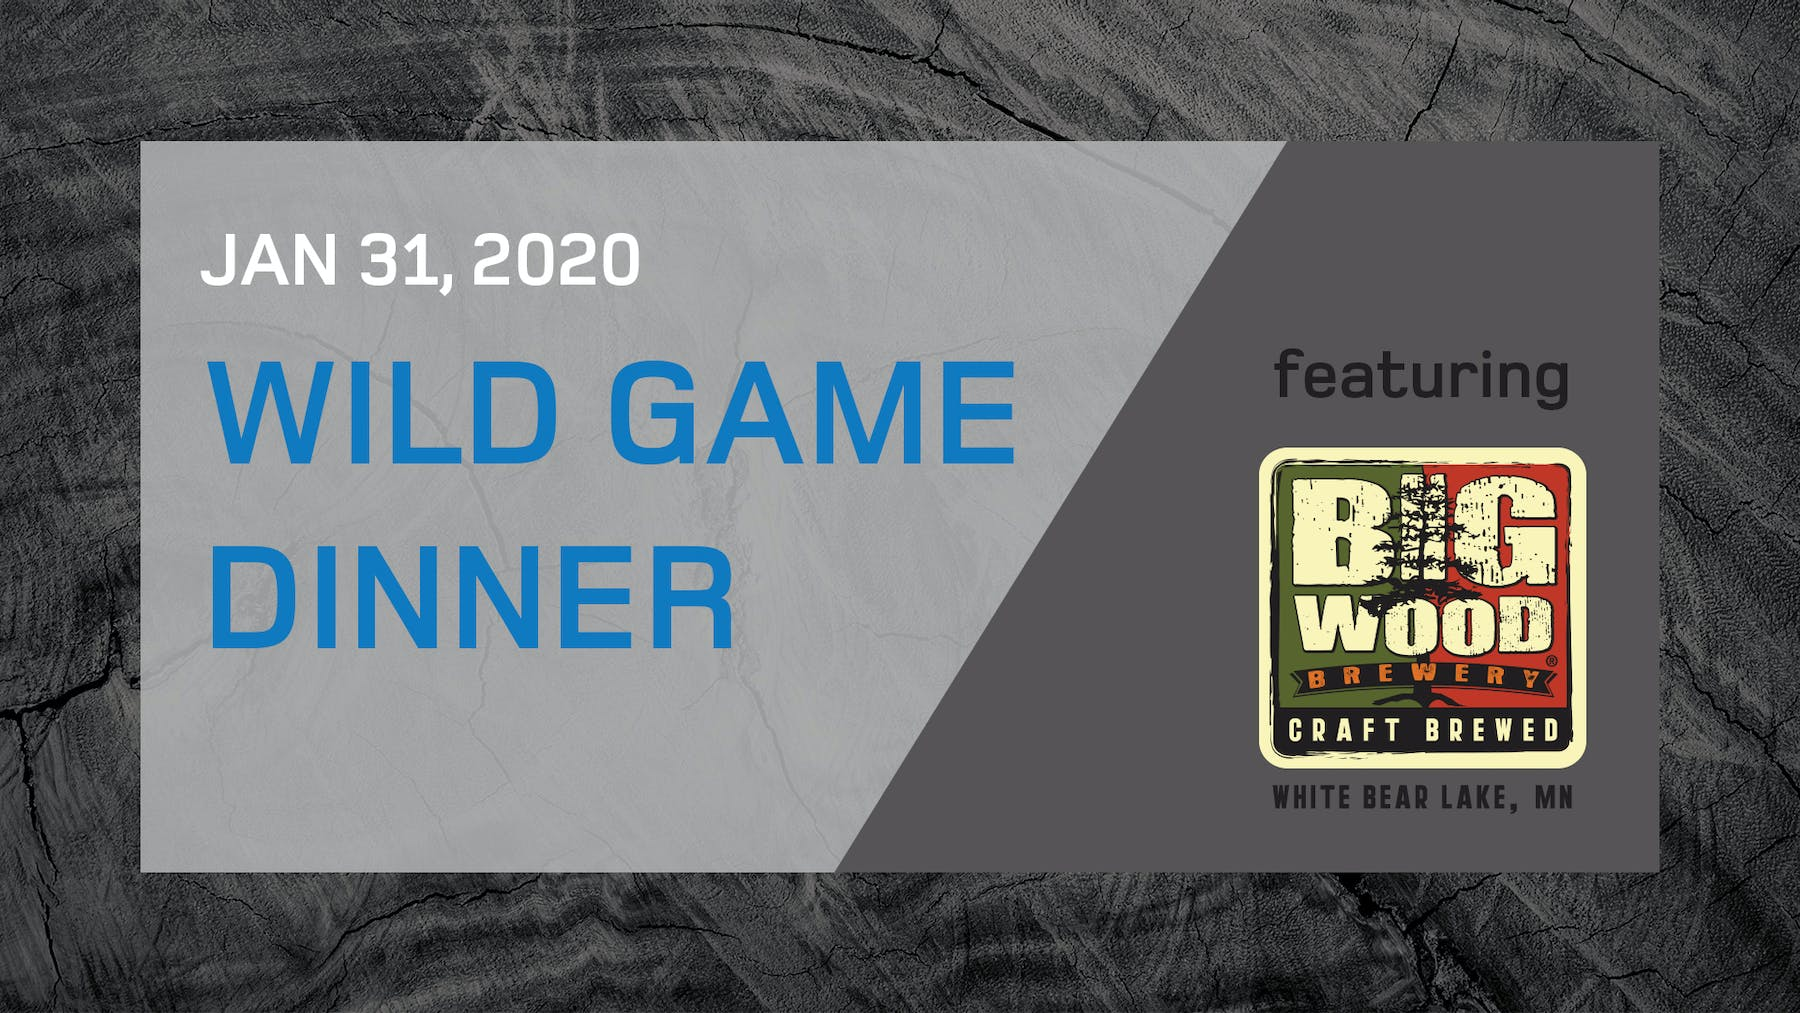 Wild Game Dinner featuring Big Wood Brewery on January 31, 2020